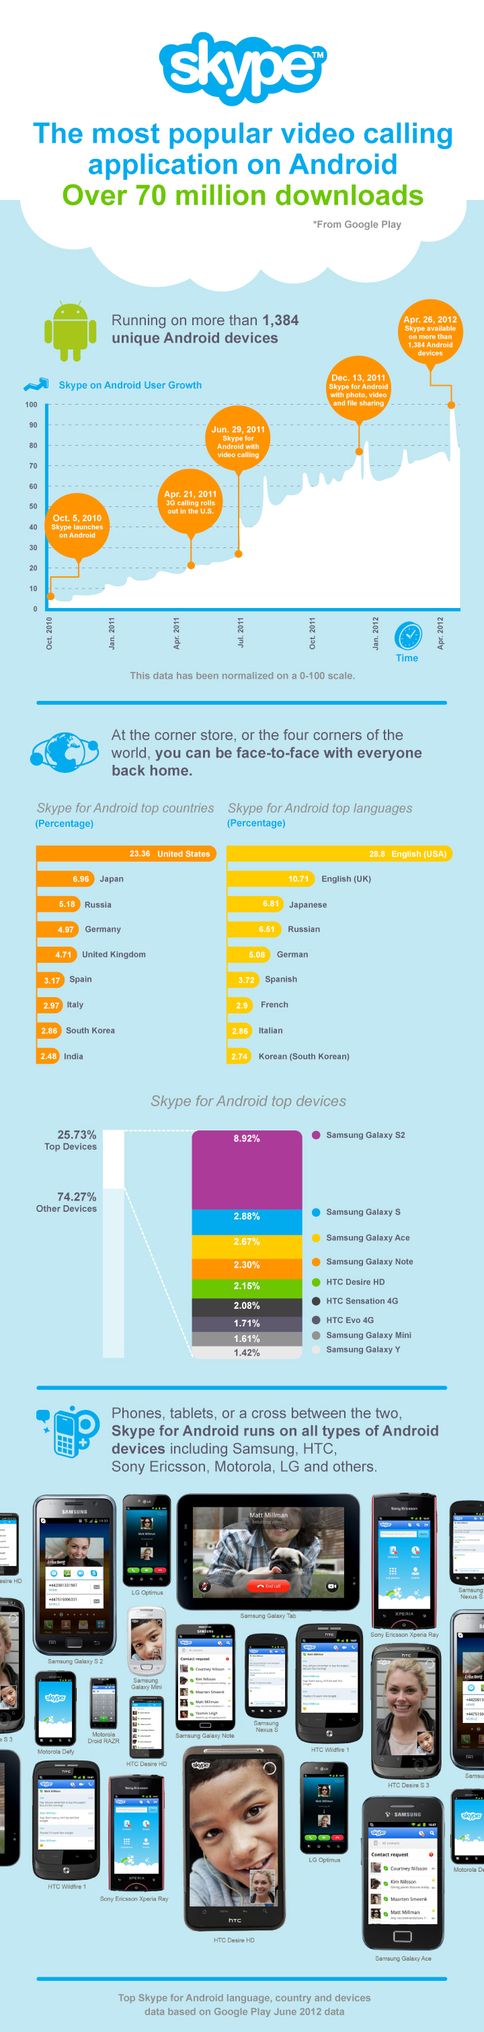 skypee Skype: our Android app now works on 1,384 devices, has been downloaded over 70 million times